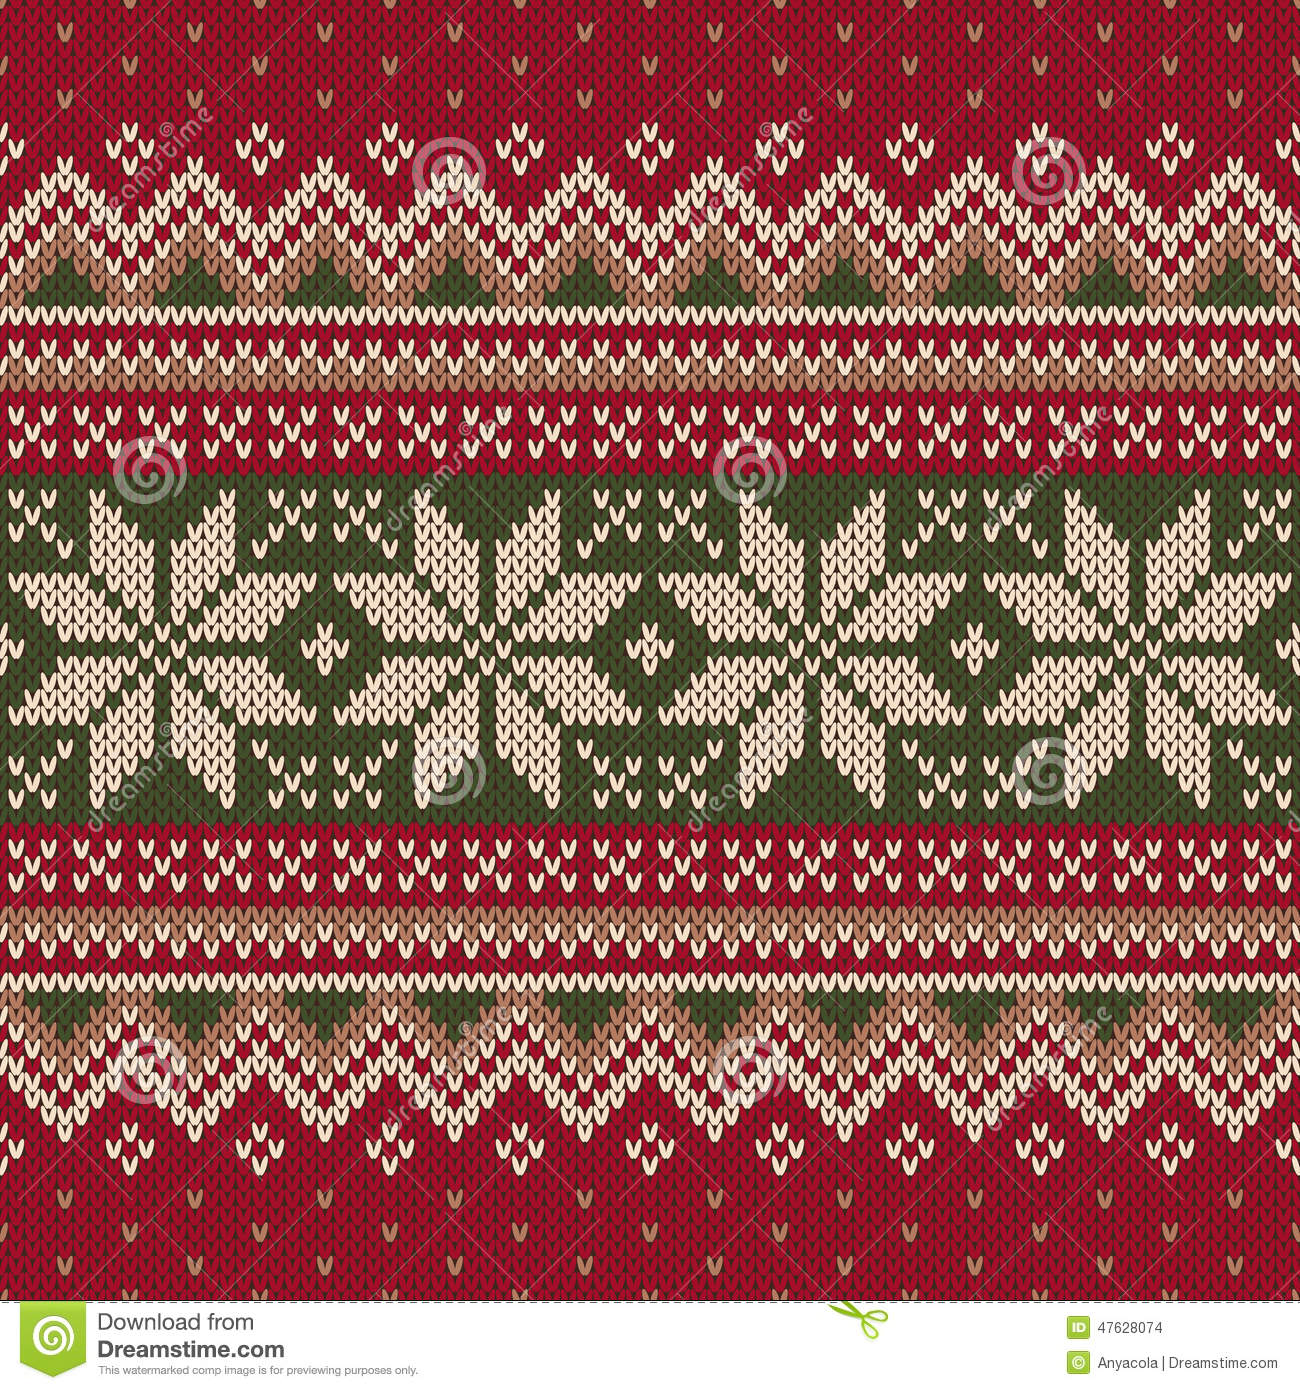 Christmas Sweater Pattern.Traditional Christmas Sweater Design Seamless Pattern Stock